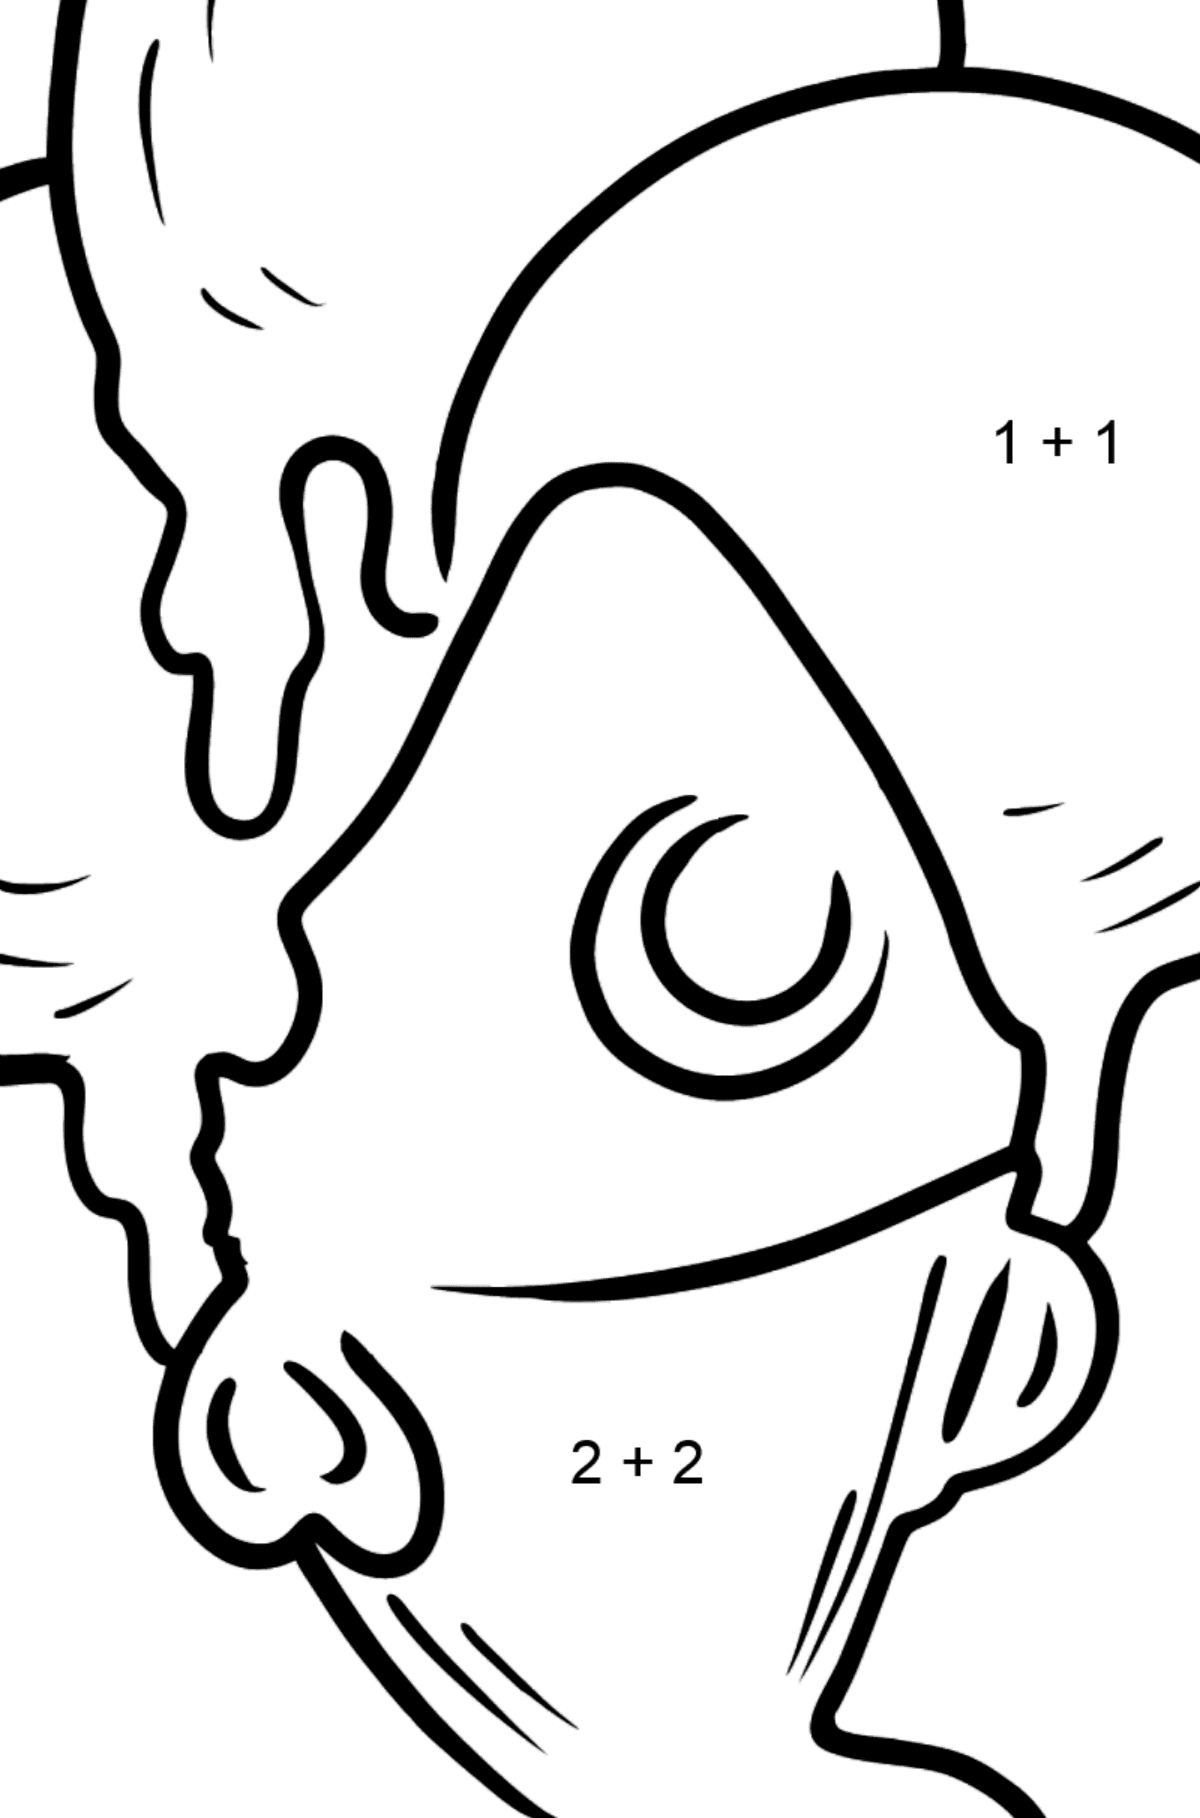 Bubble Gum Ice Cream coloring page - Math Coloring - Addition for Kids